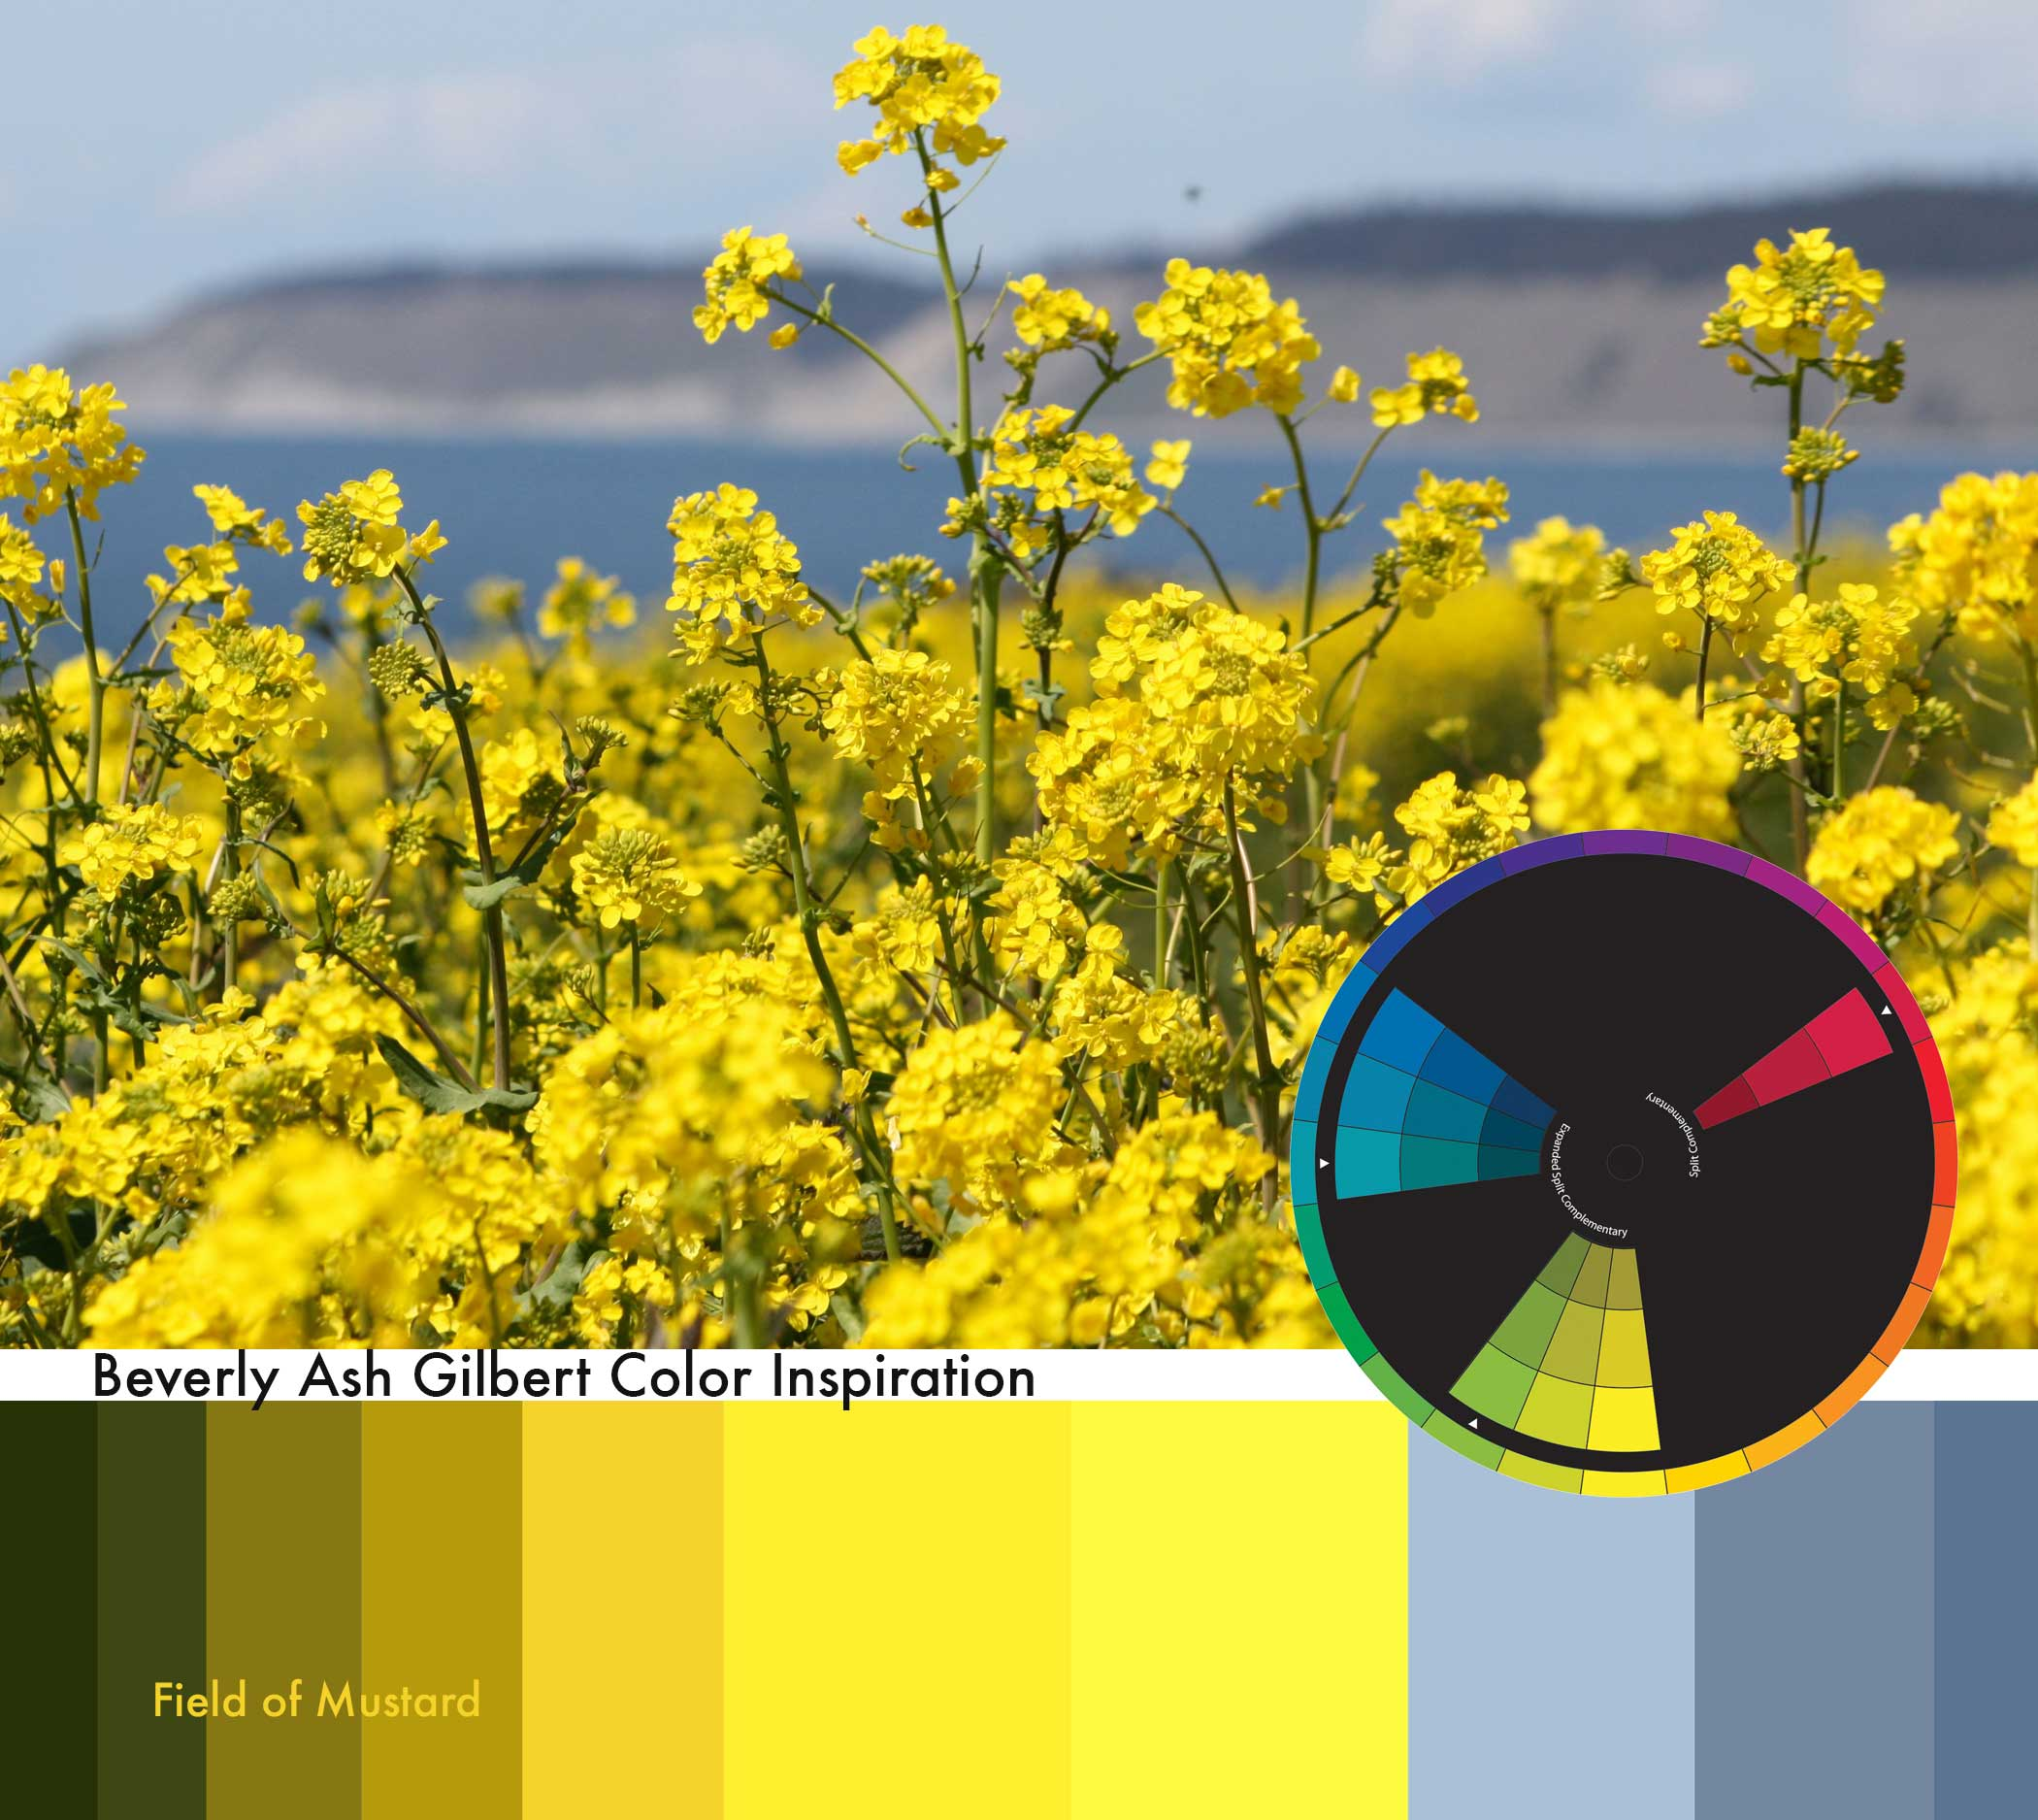 ColorInspiration_FieldofMustard_small.jpg